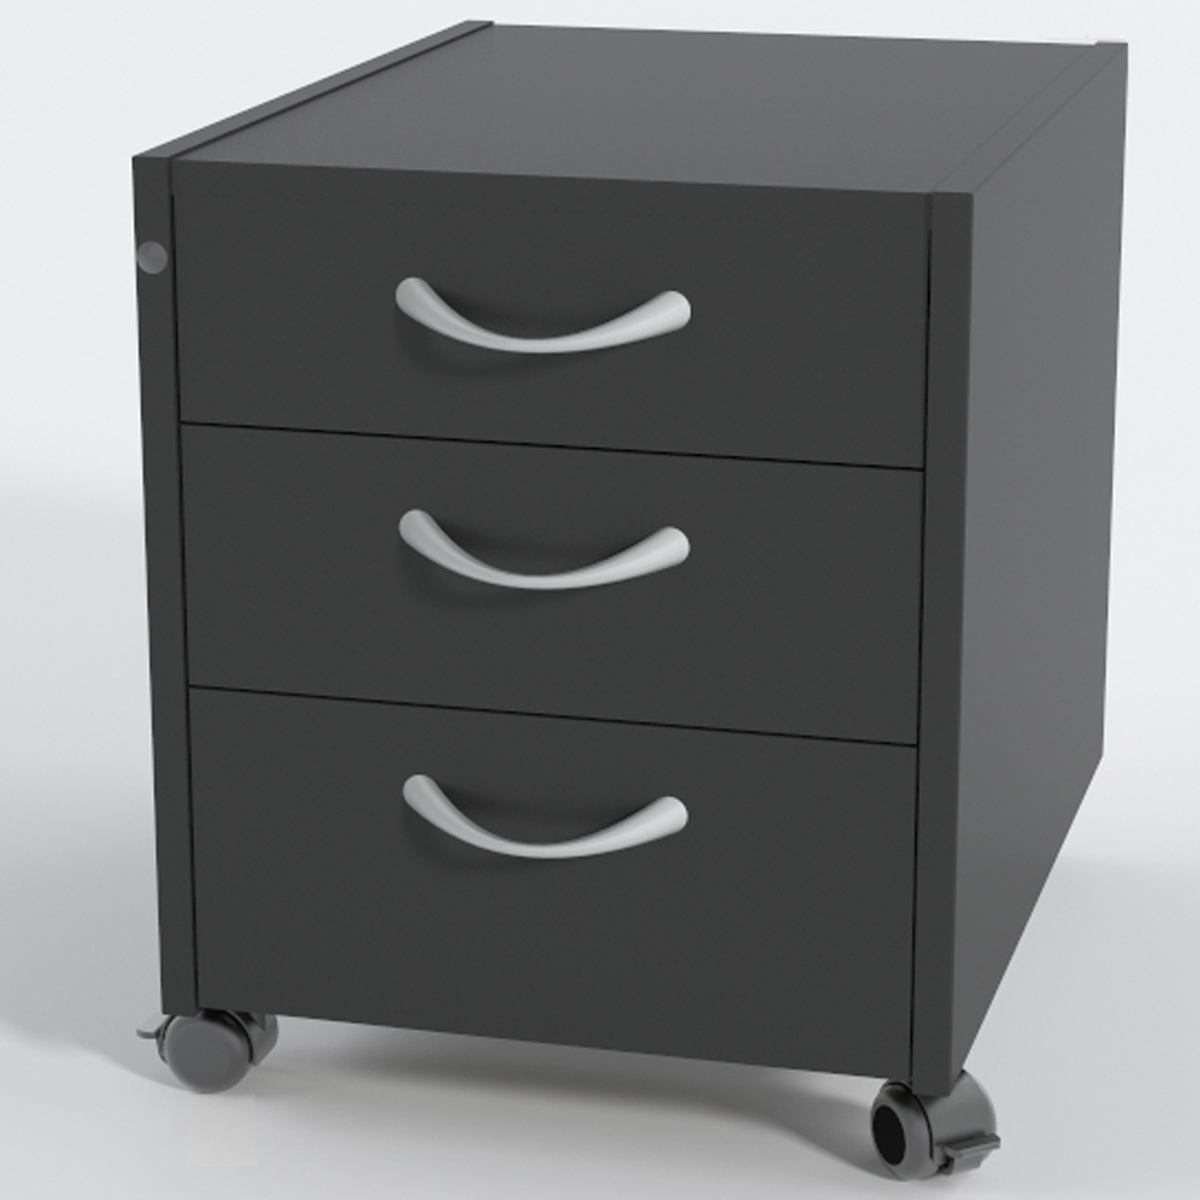 rollcontainer 3 laminat schwarz ergonomie behinderung reha. Black Bedroom Furniture Sets. Home Design Ideas